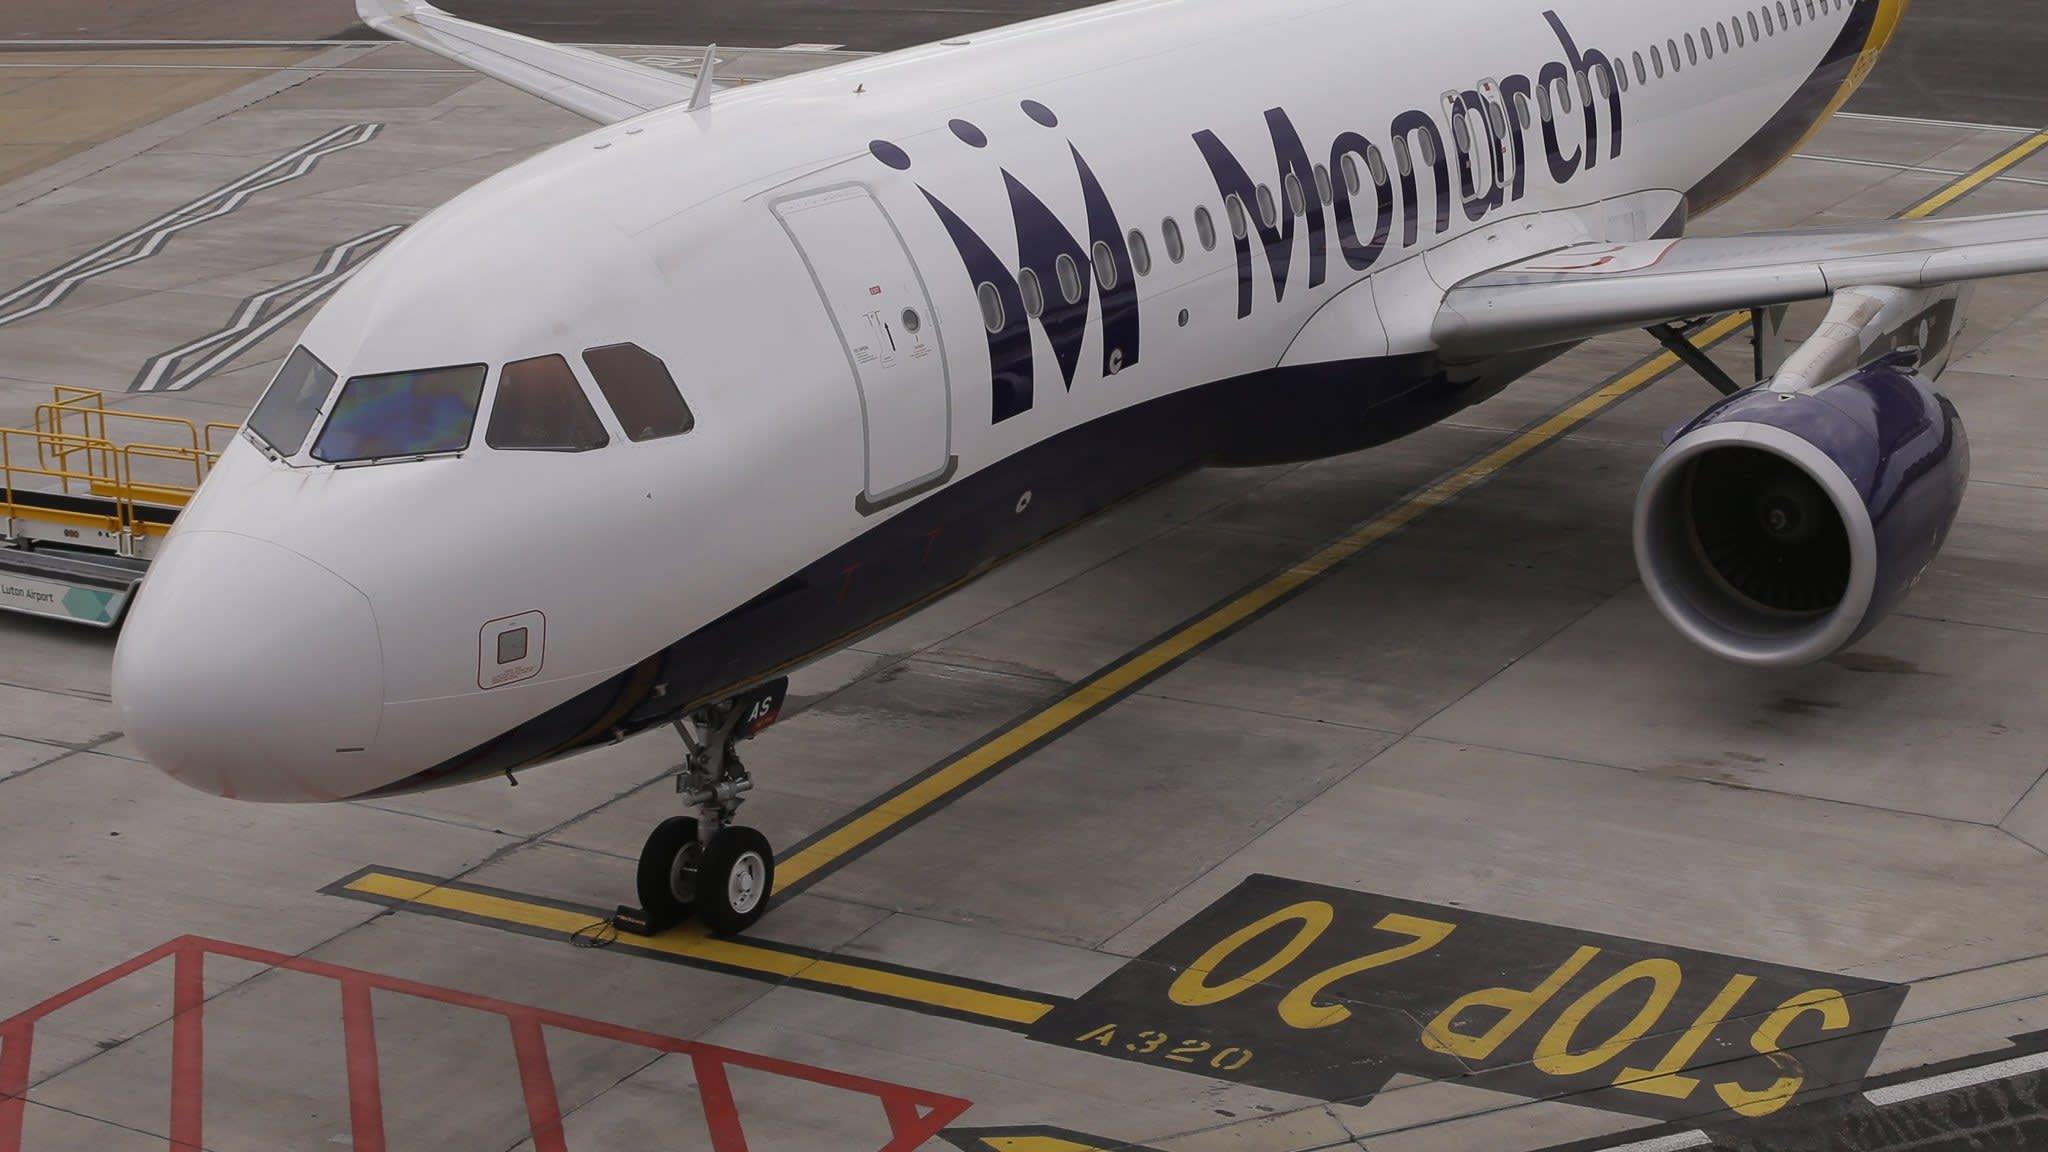 Boeing helped finance bailout of Monarch Airlines   Financial Times